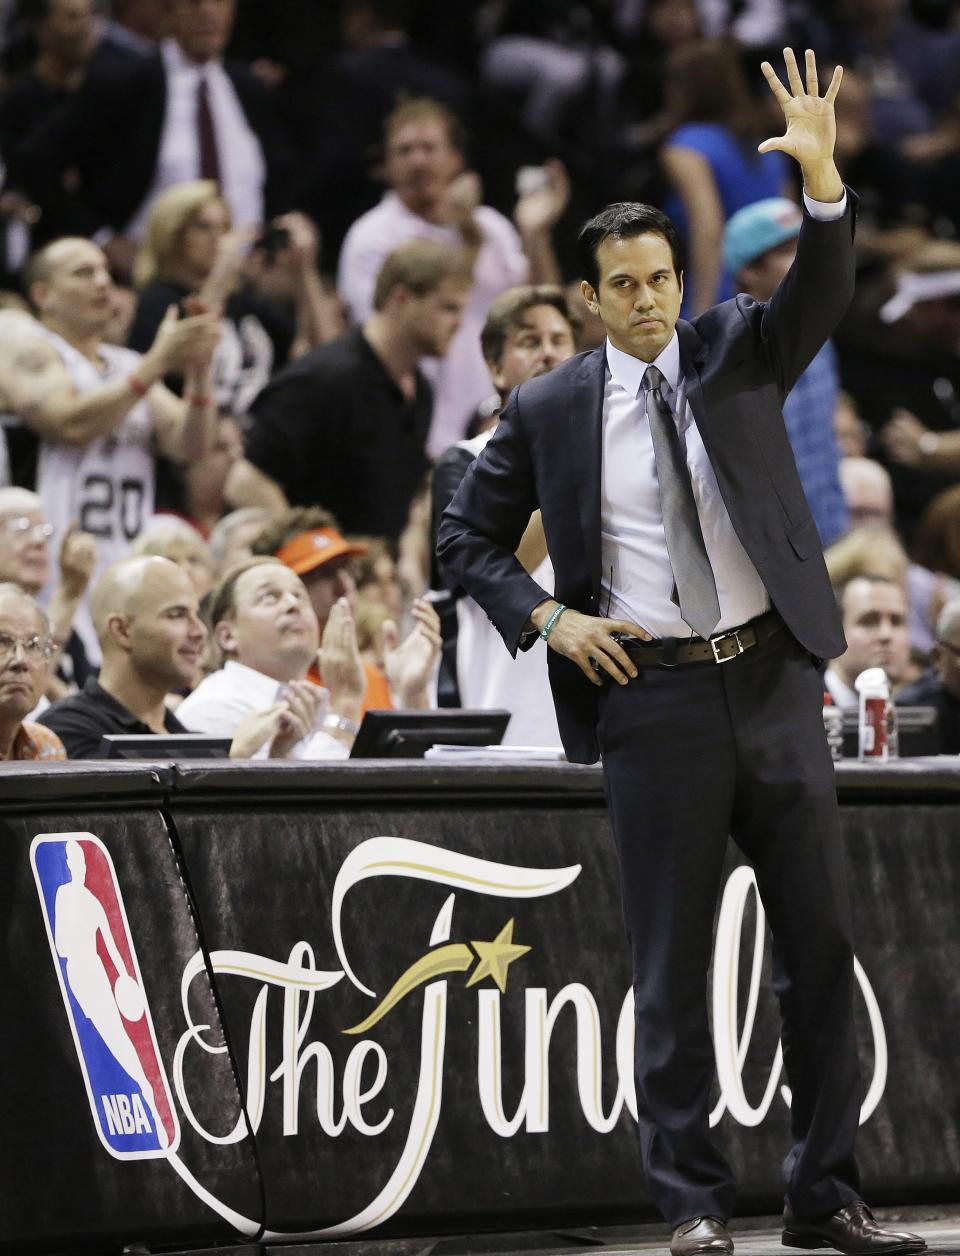 Miami Heat head coach Erik Spoelstra signals against the San Antonio Spurs during the first half at Game 5 of the NBA Finals basketball series, Sunday, June 16, 2013, in San Antonio. (AP Photo/Eric Gay)